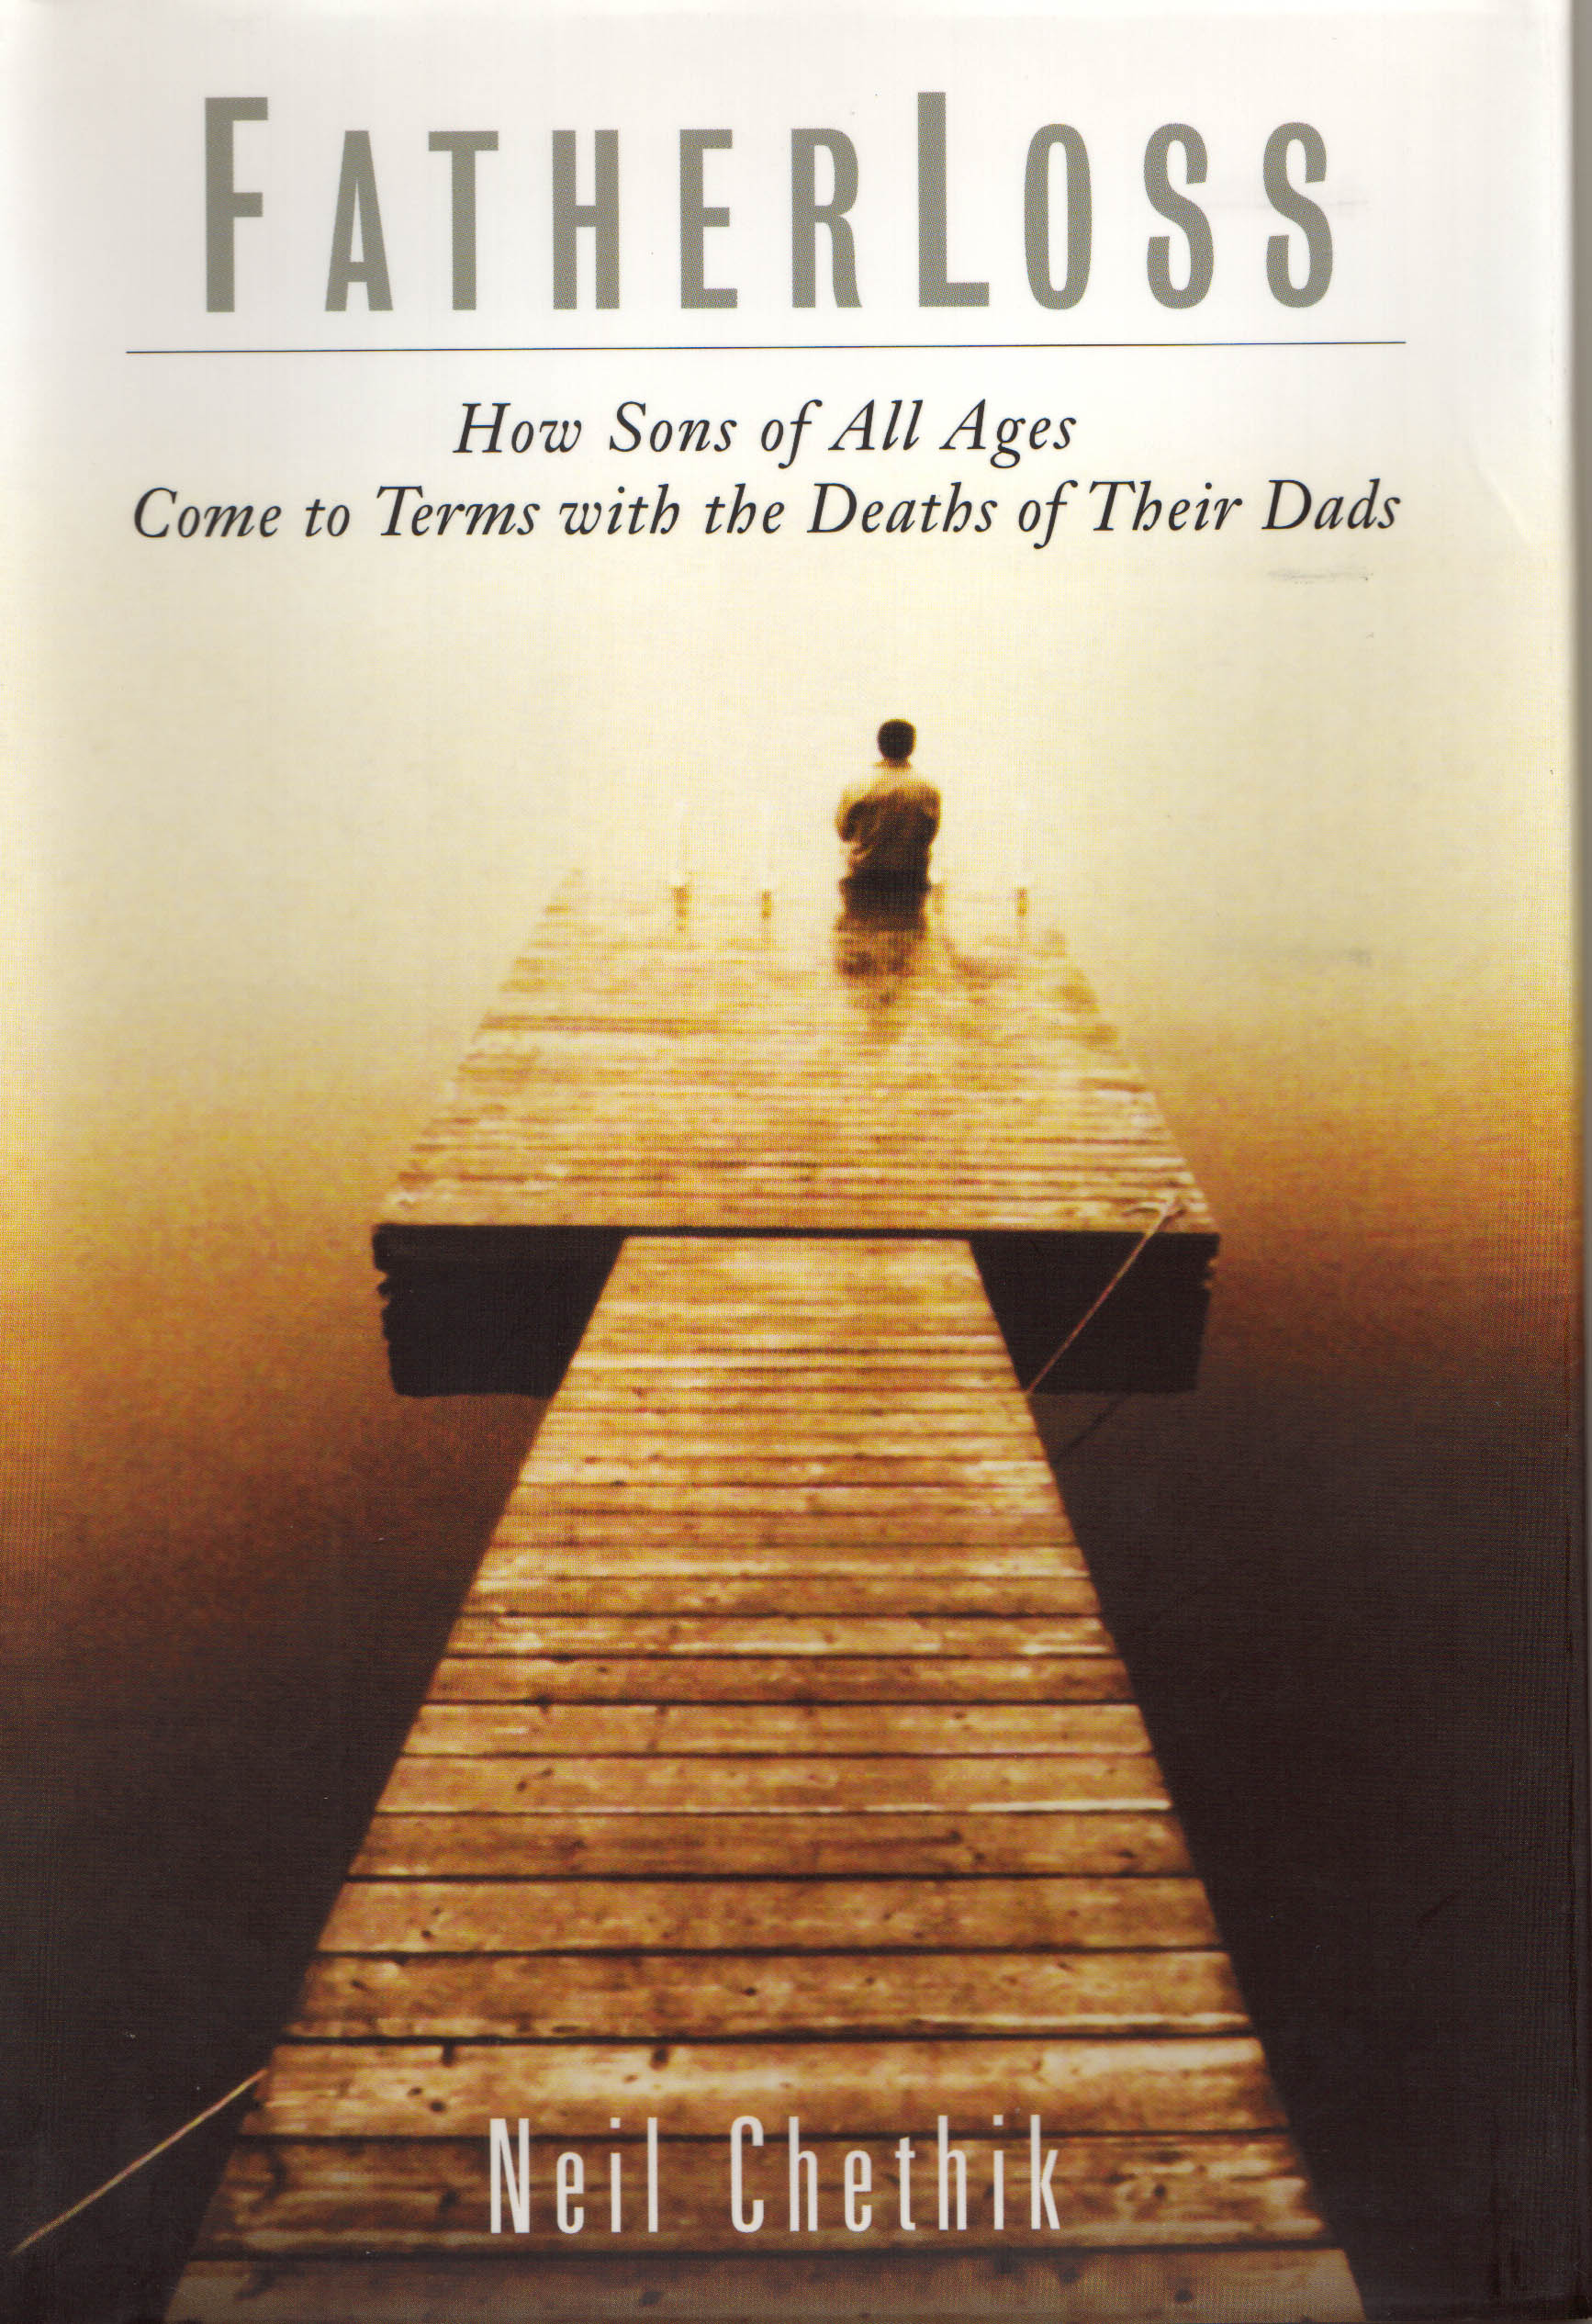 Quotes About Losing A Dad. QuotesGram